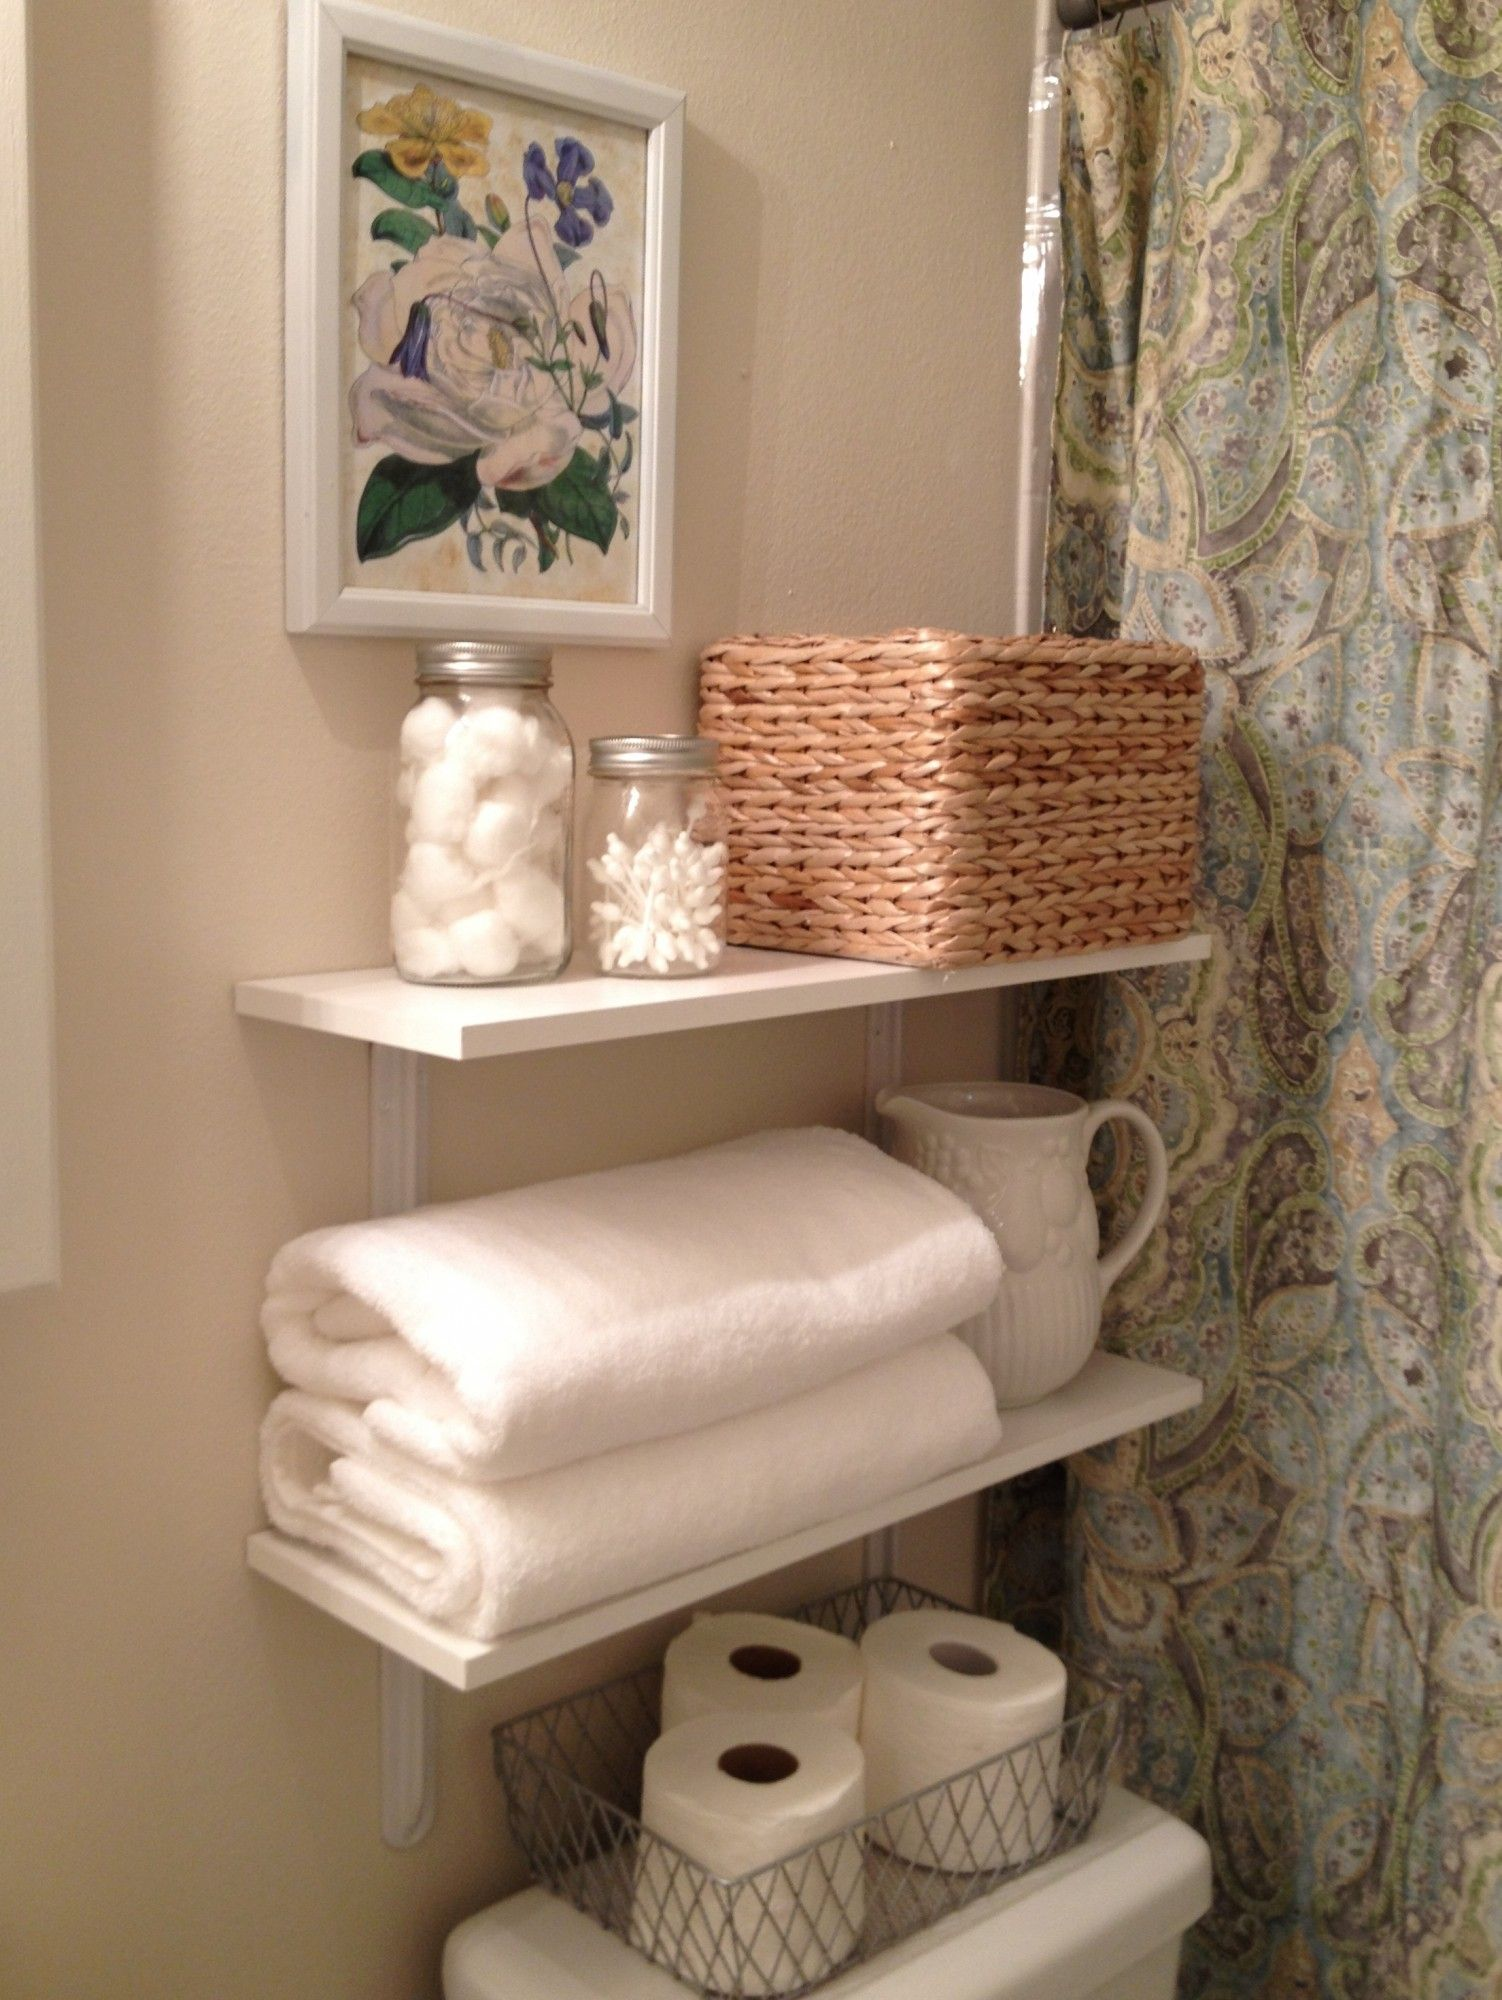 Budget Self Storage Ideas Room By Room BathroomDecor - Bathroom towel storage over toilet for small bathroom ideas